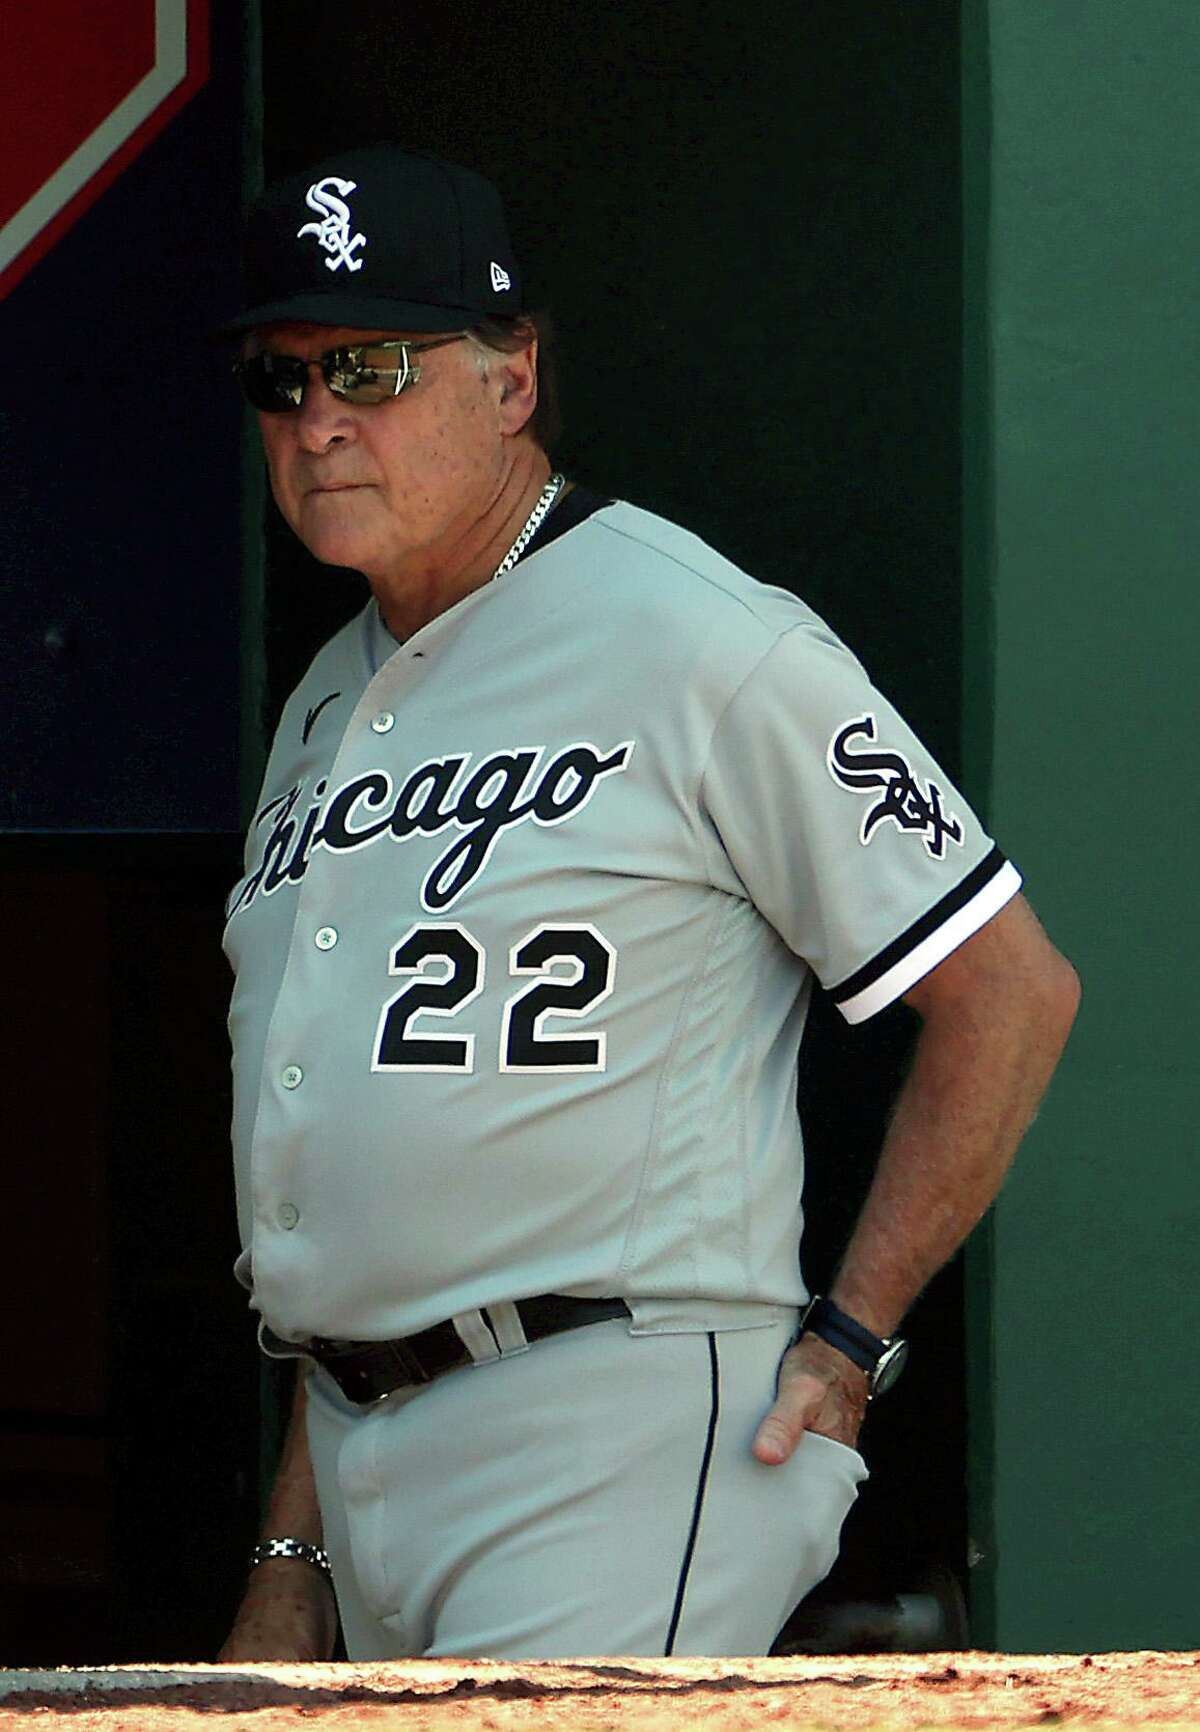 Tony La Russa and the AL Central-leading White Sox take on the A's at the Coliseum at 6:30 p.m. Wednesday (NBCSCA/960).